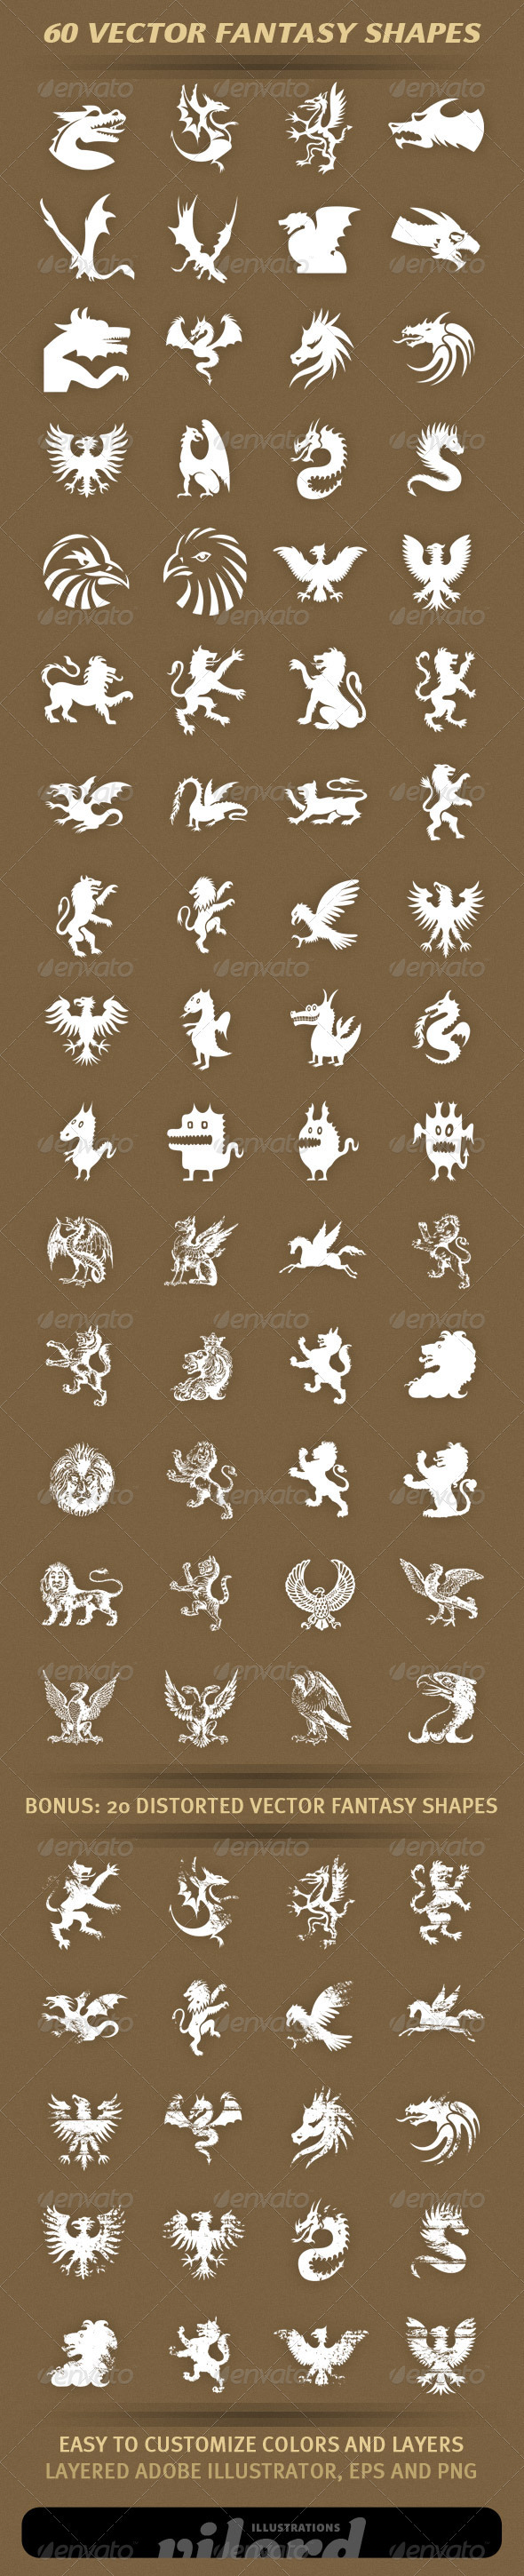 60 Fantasy Shapes - Characters Vectors